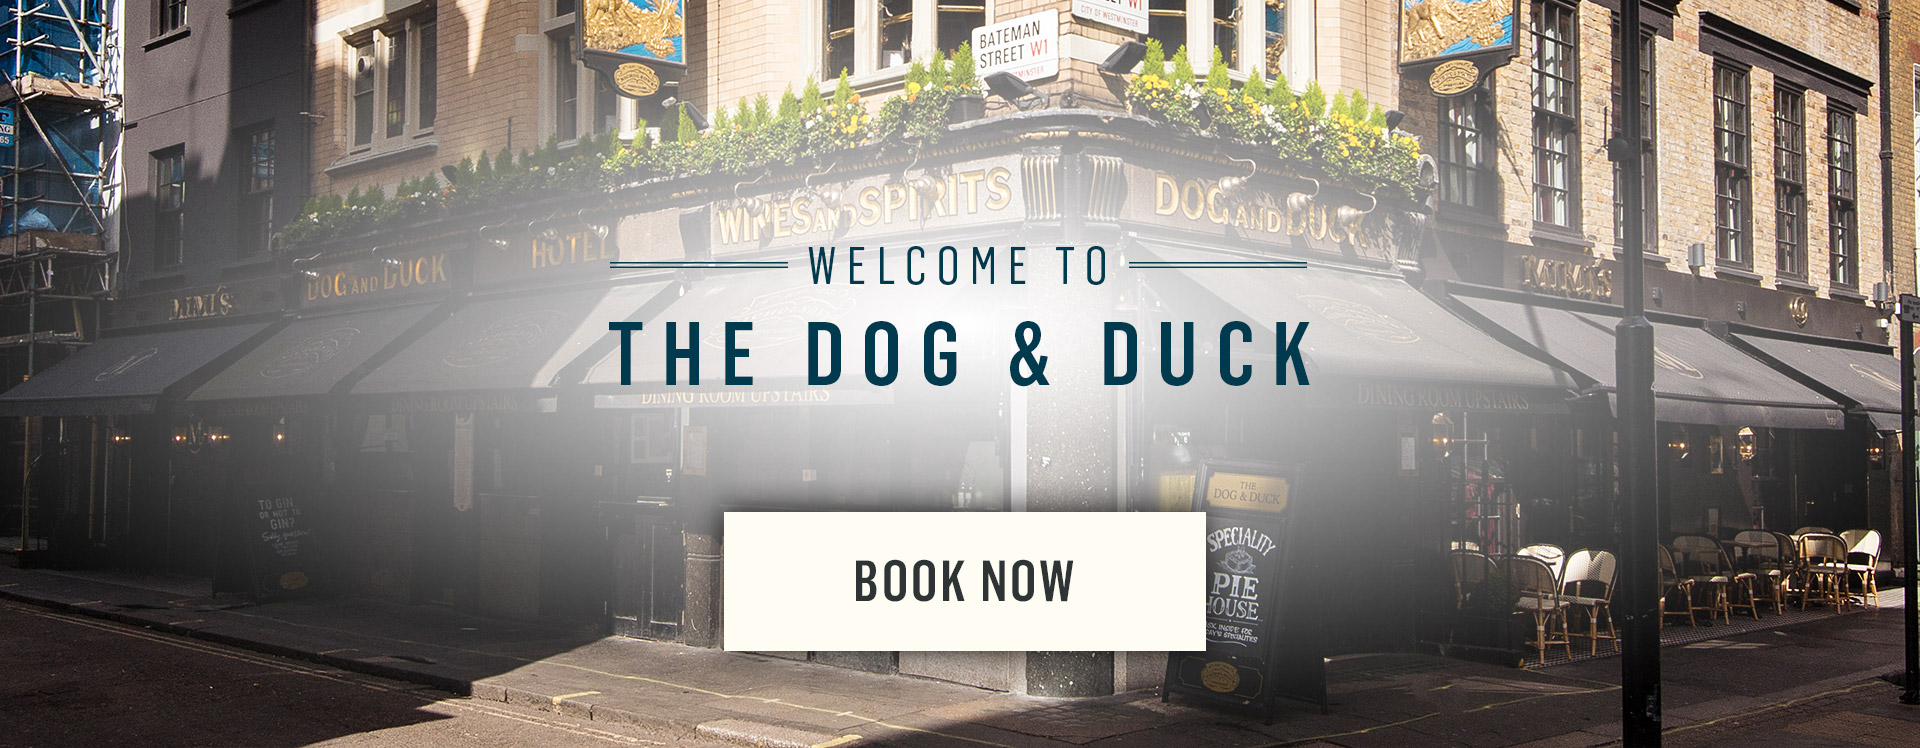 Welcome to The Dog and Duck - Book Now